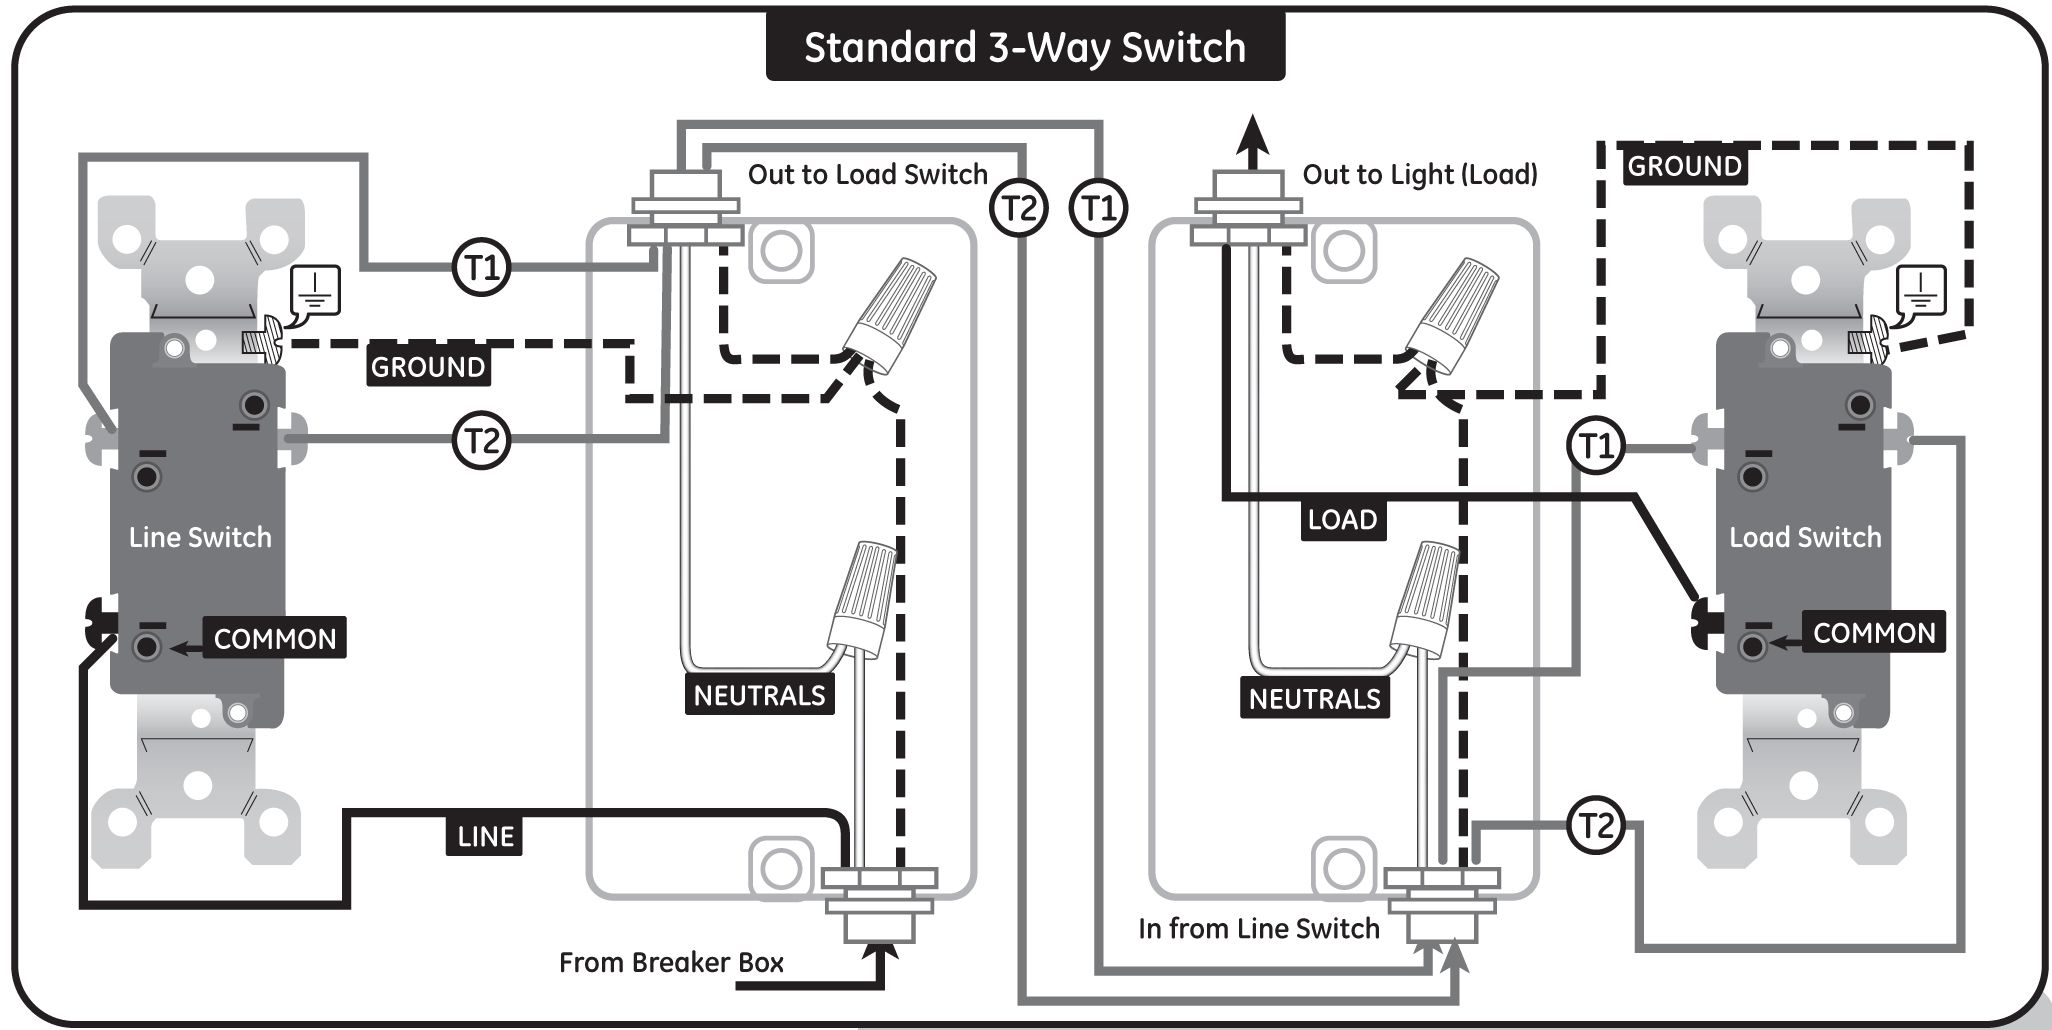 How to install GE JASCO 3-Way Smart Switches | Smart Home | Pinterest